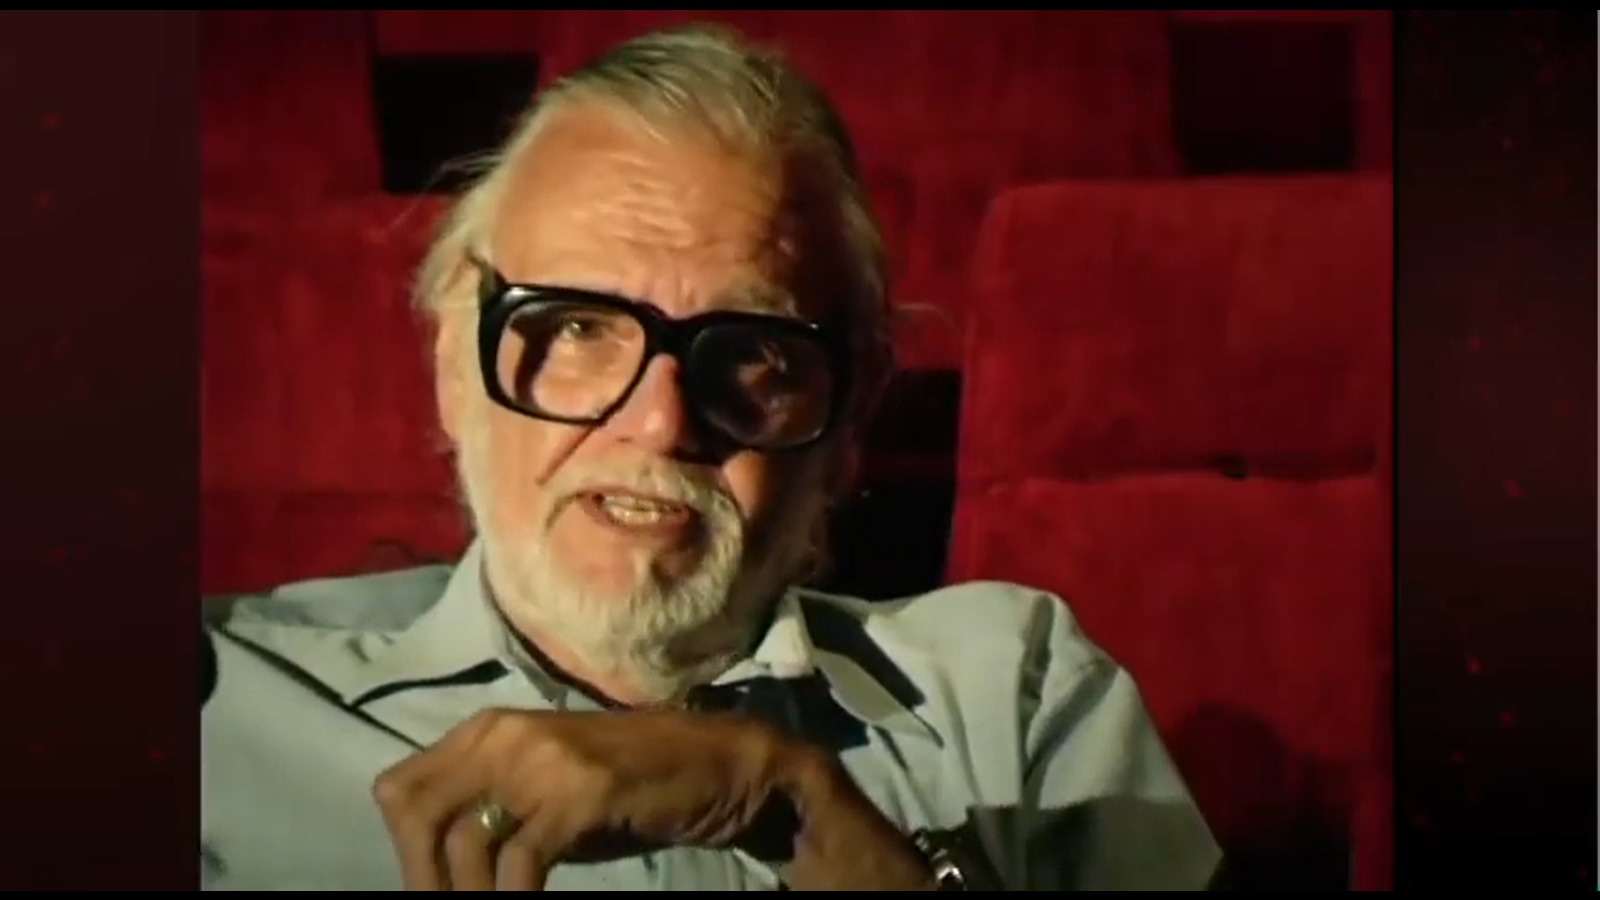 Under the scares George A Romero